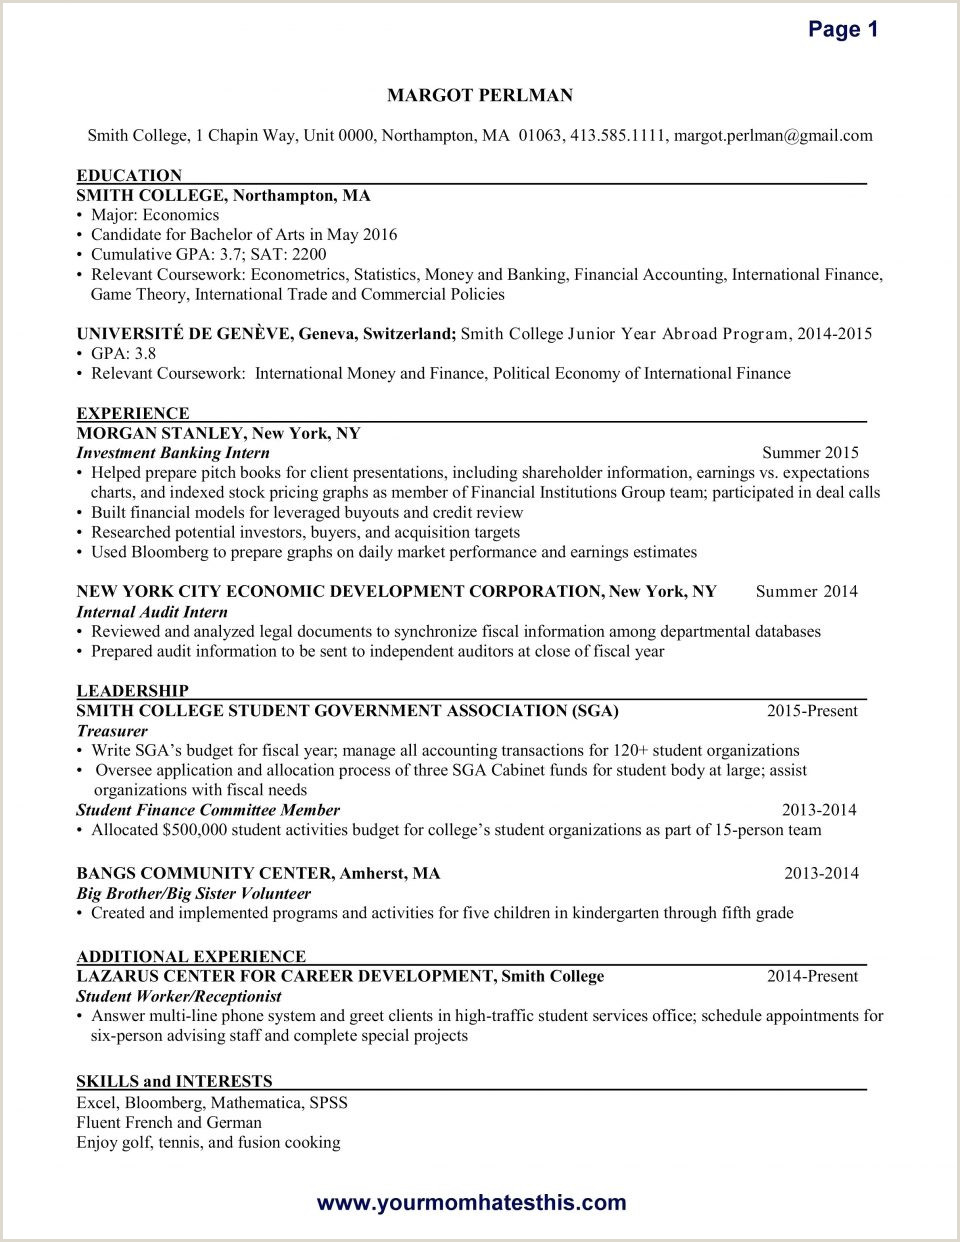 Cv Format For Canadian Job Market Job Application Cover Letter Uk New Law Sample Lawyer Canada